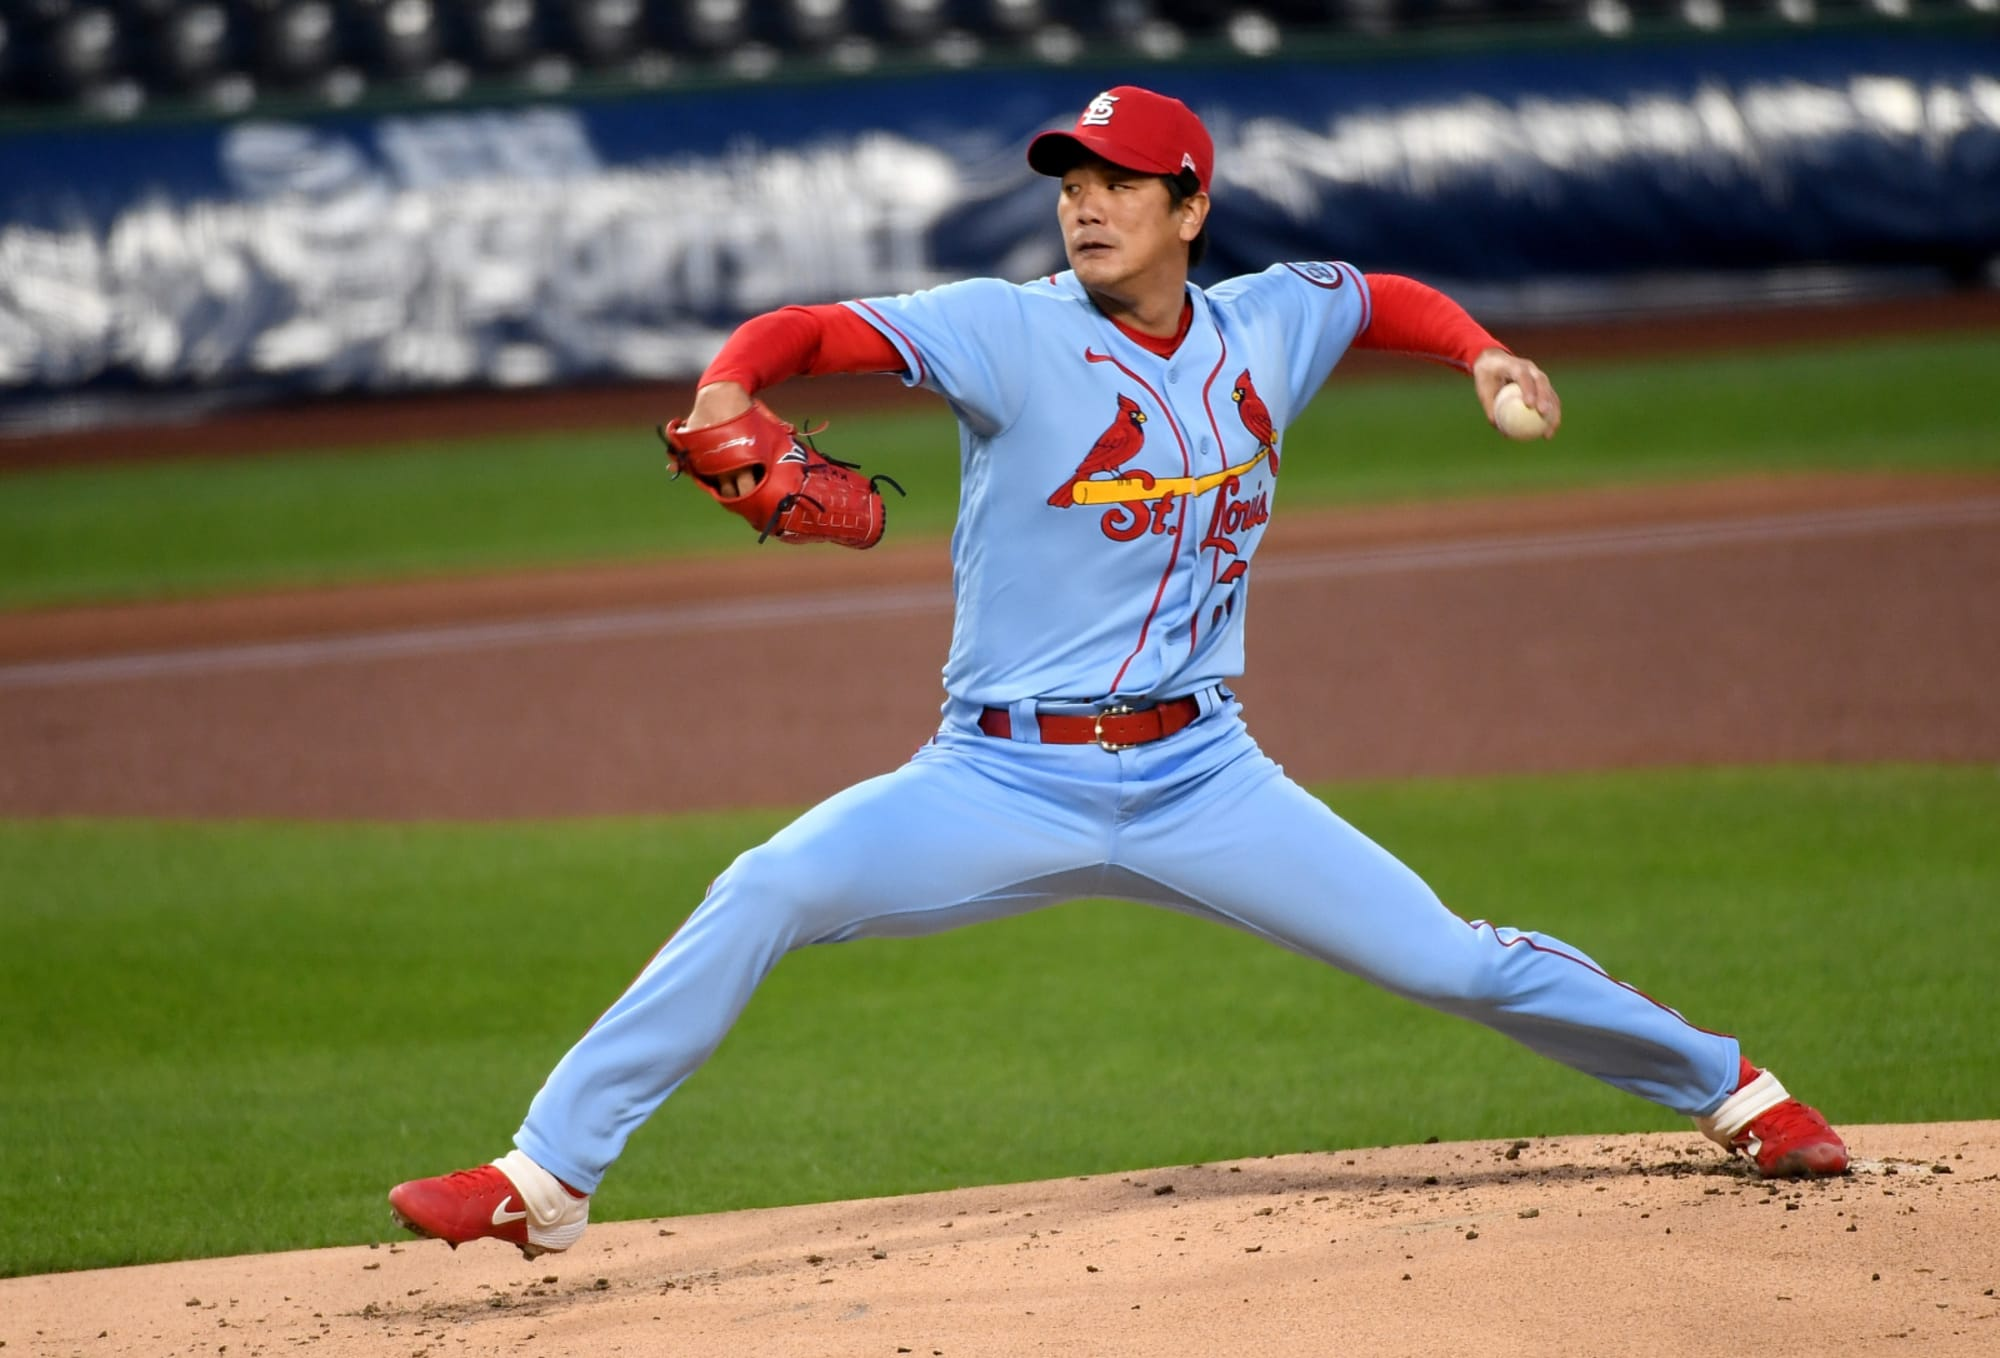 St. Louis Cardinals: Kwang Hyun Kim is a dark horse for Rookie of the Year